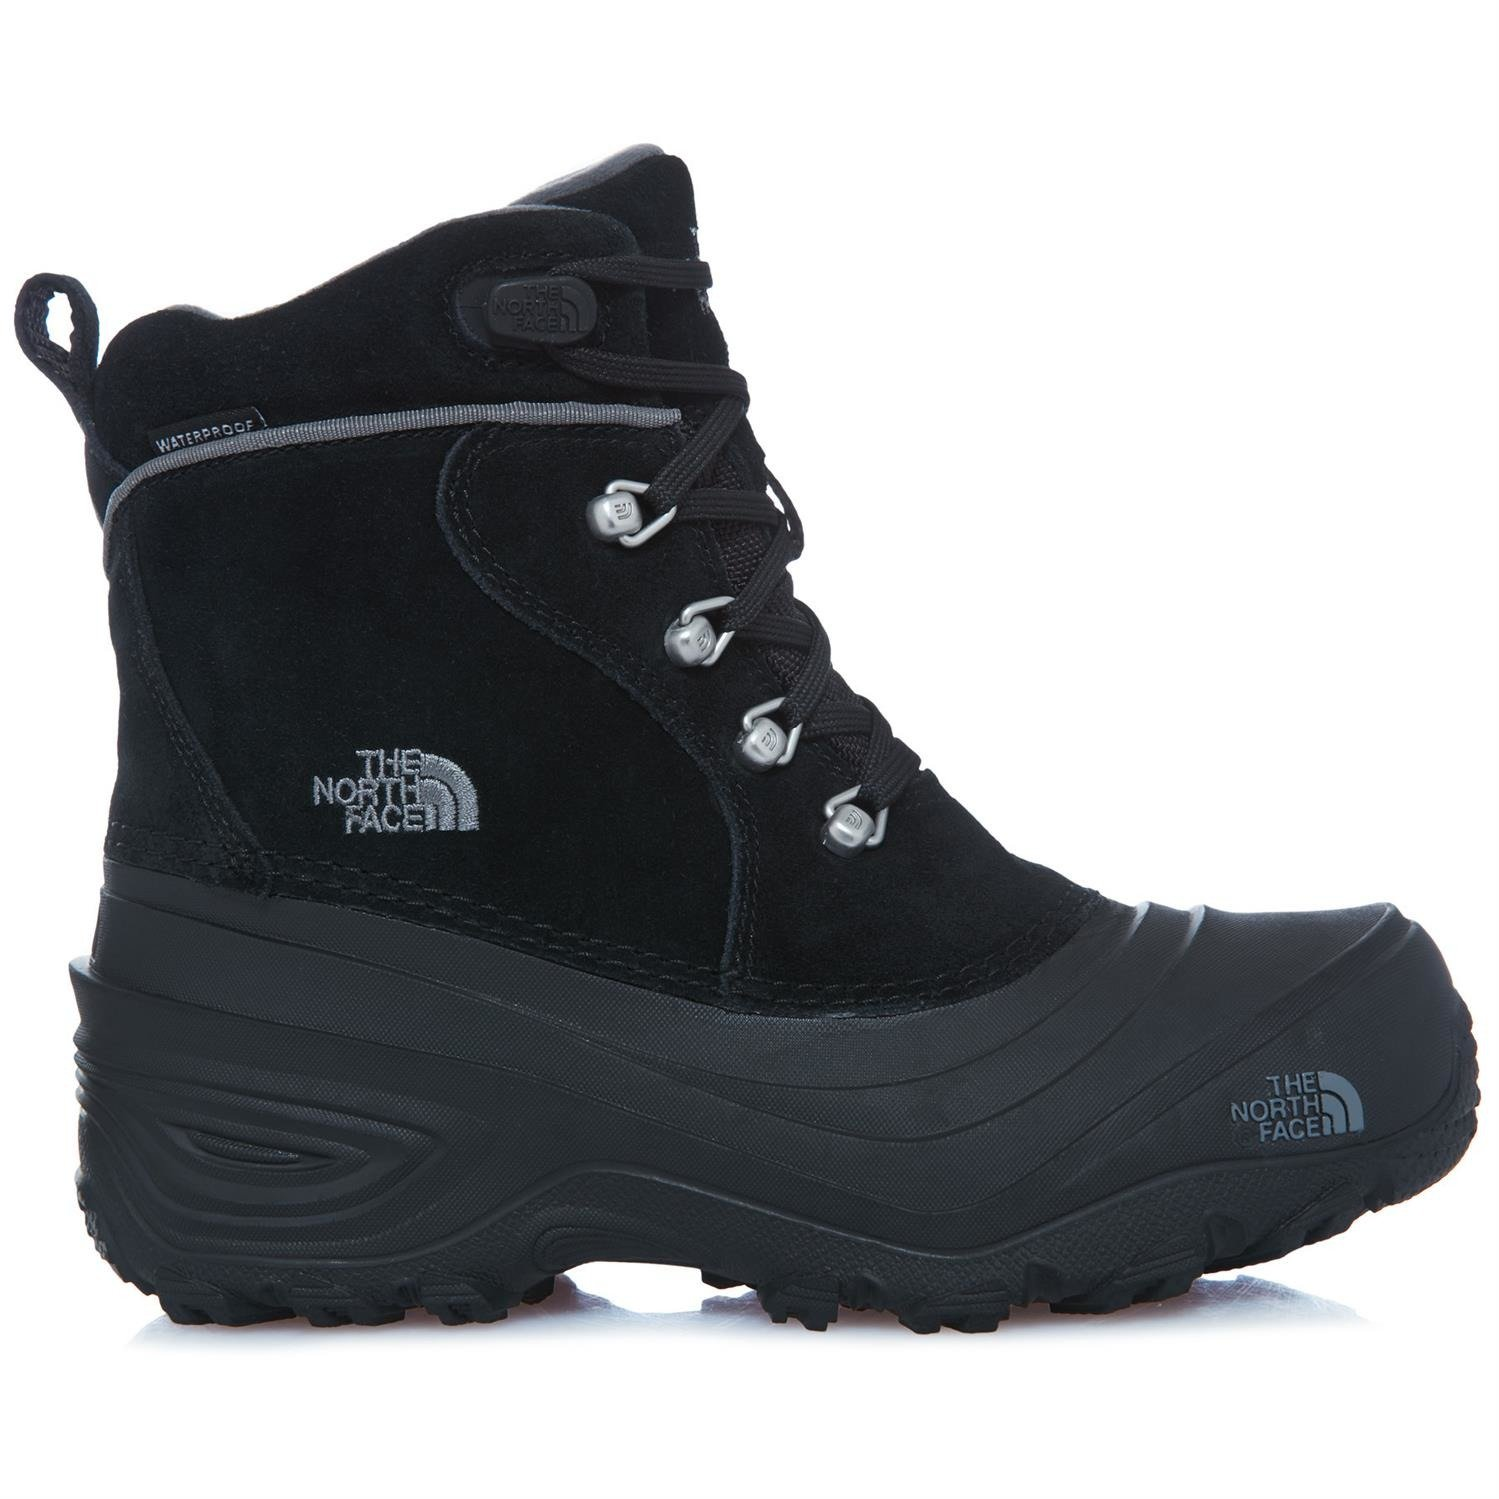 Buty zimowe The North Face Chilkat Lace II T92T5RKZ2